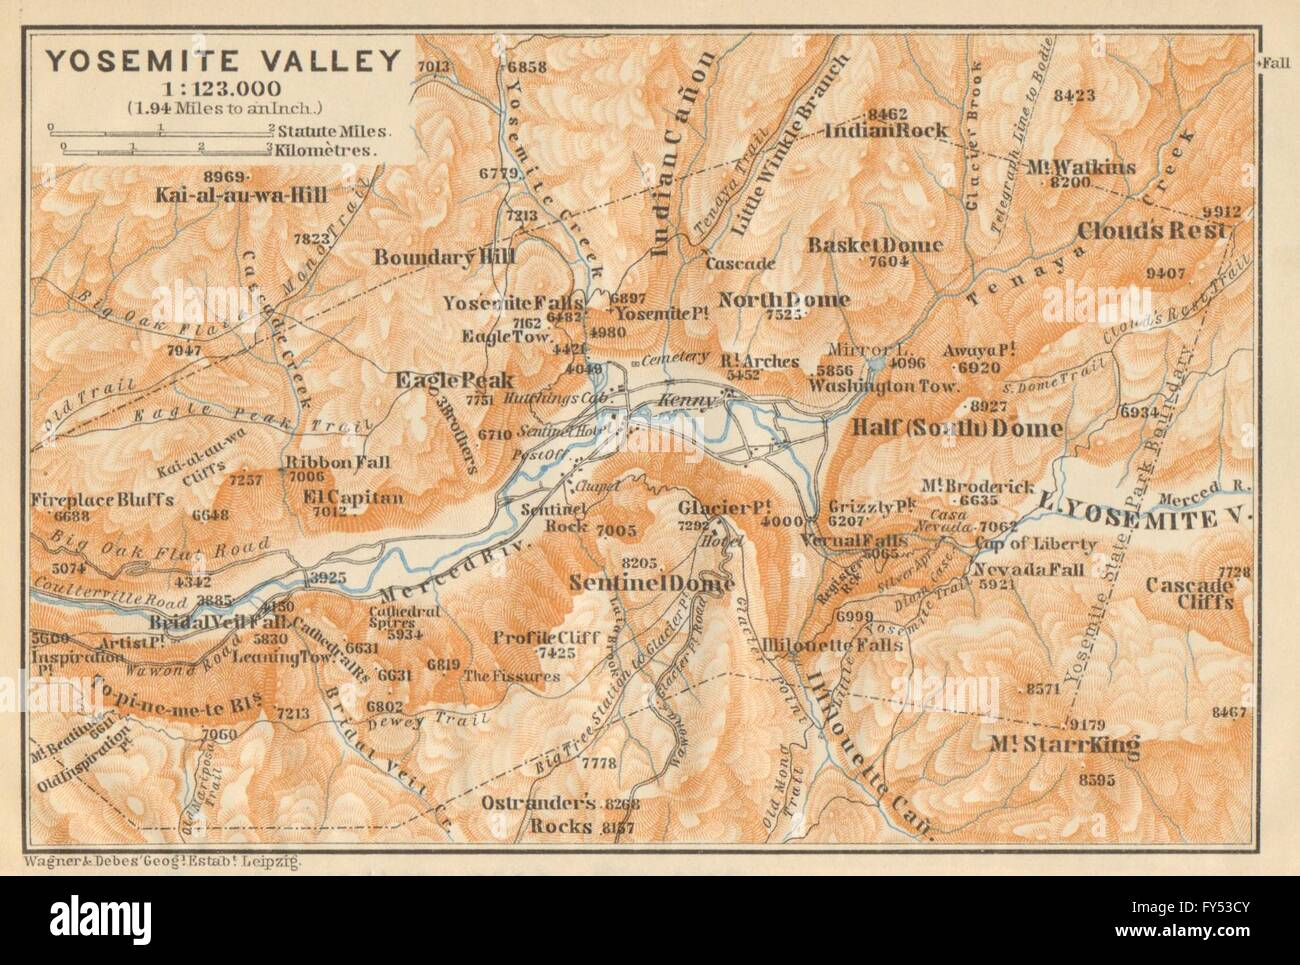 Yosemite Valley California Topo Map Baedeker 1904 Stock Photo